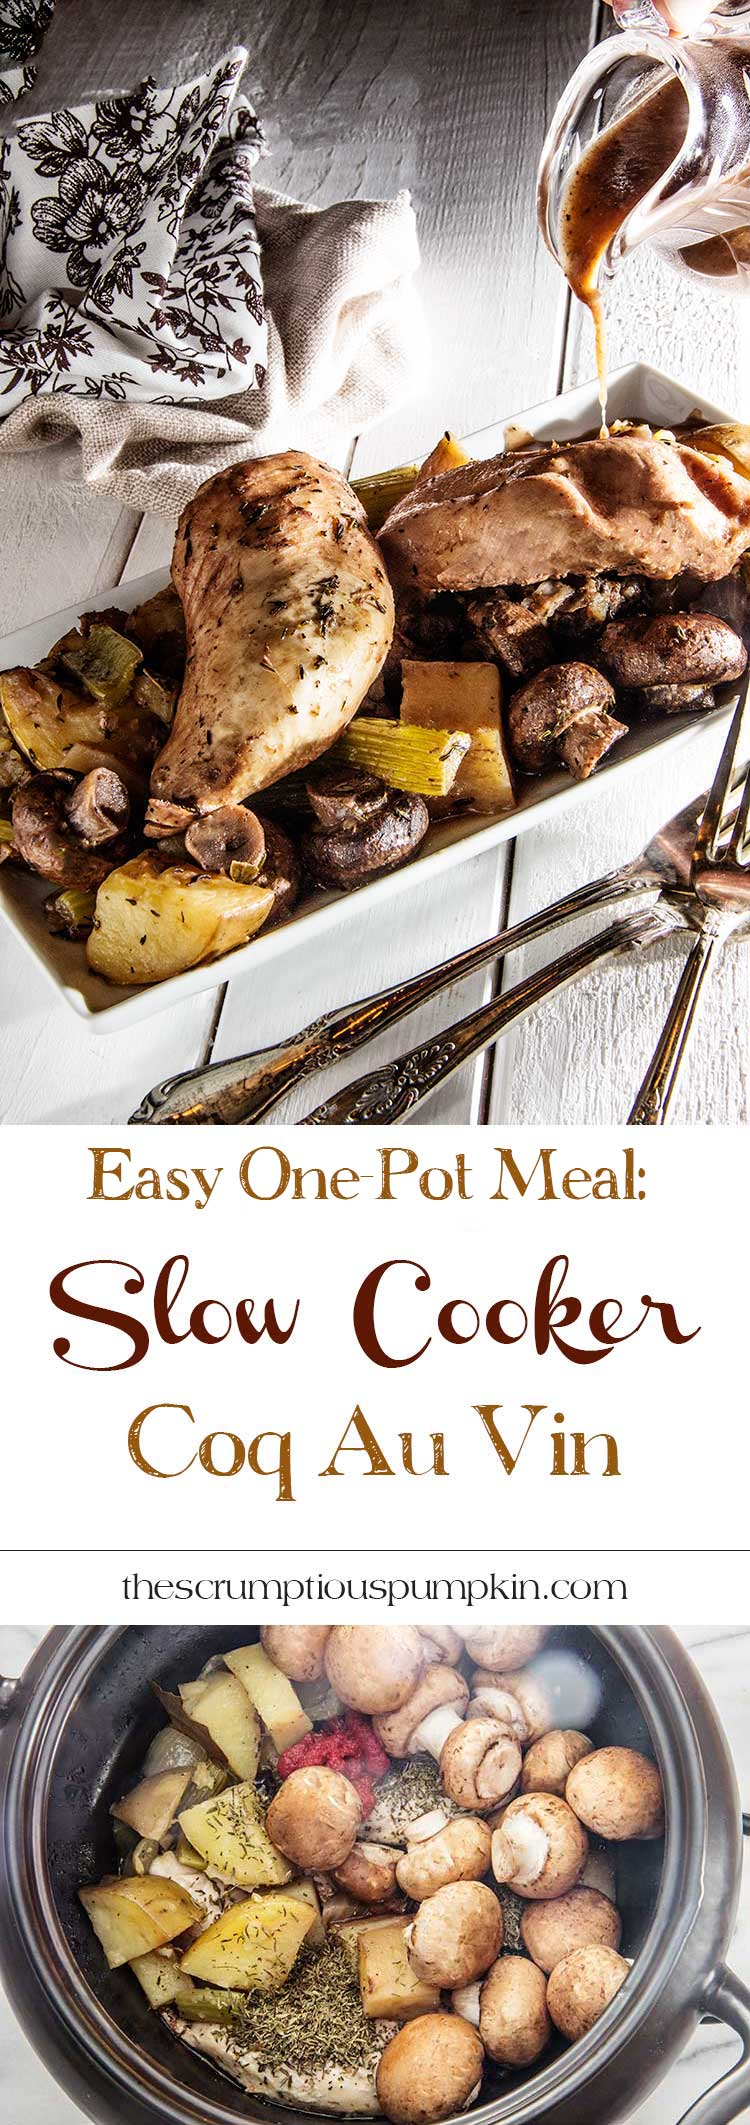 easy-one-pot-meal-slow-cooker-coq-au-vin